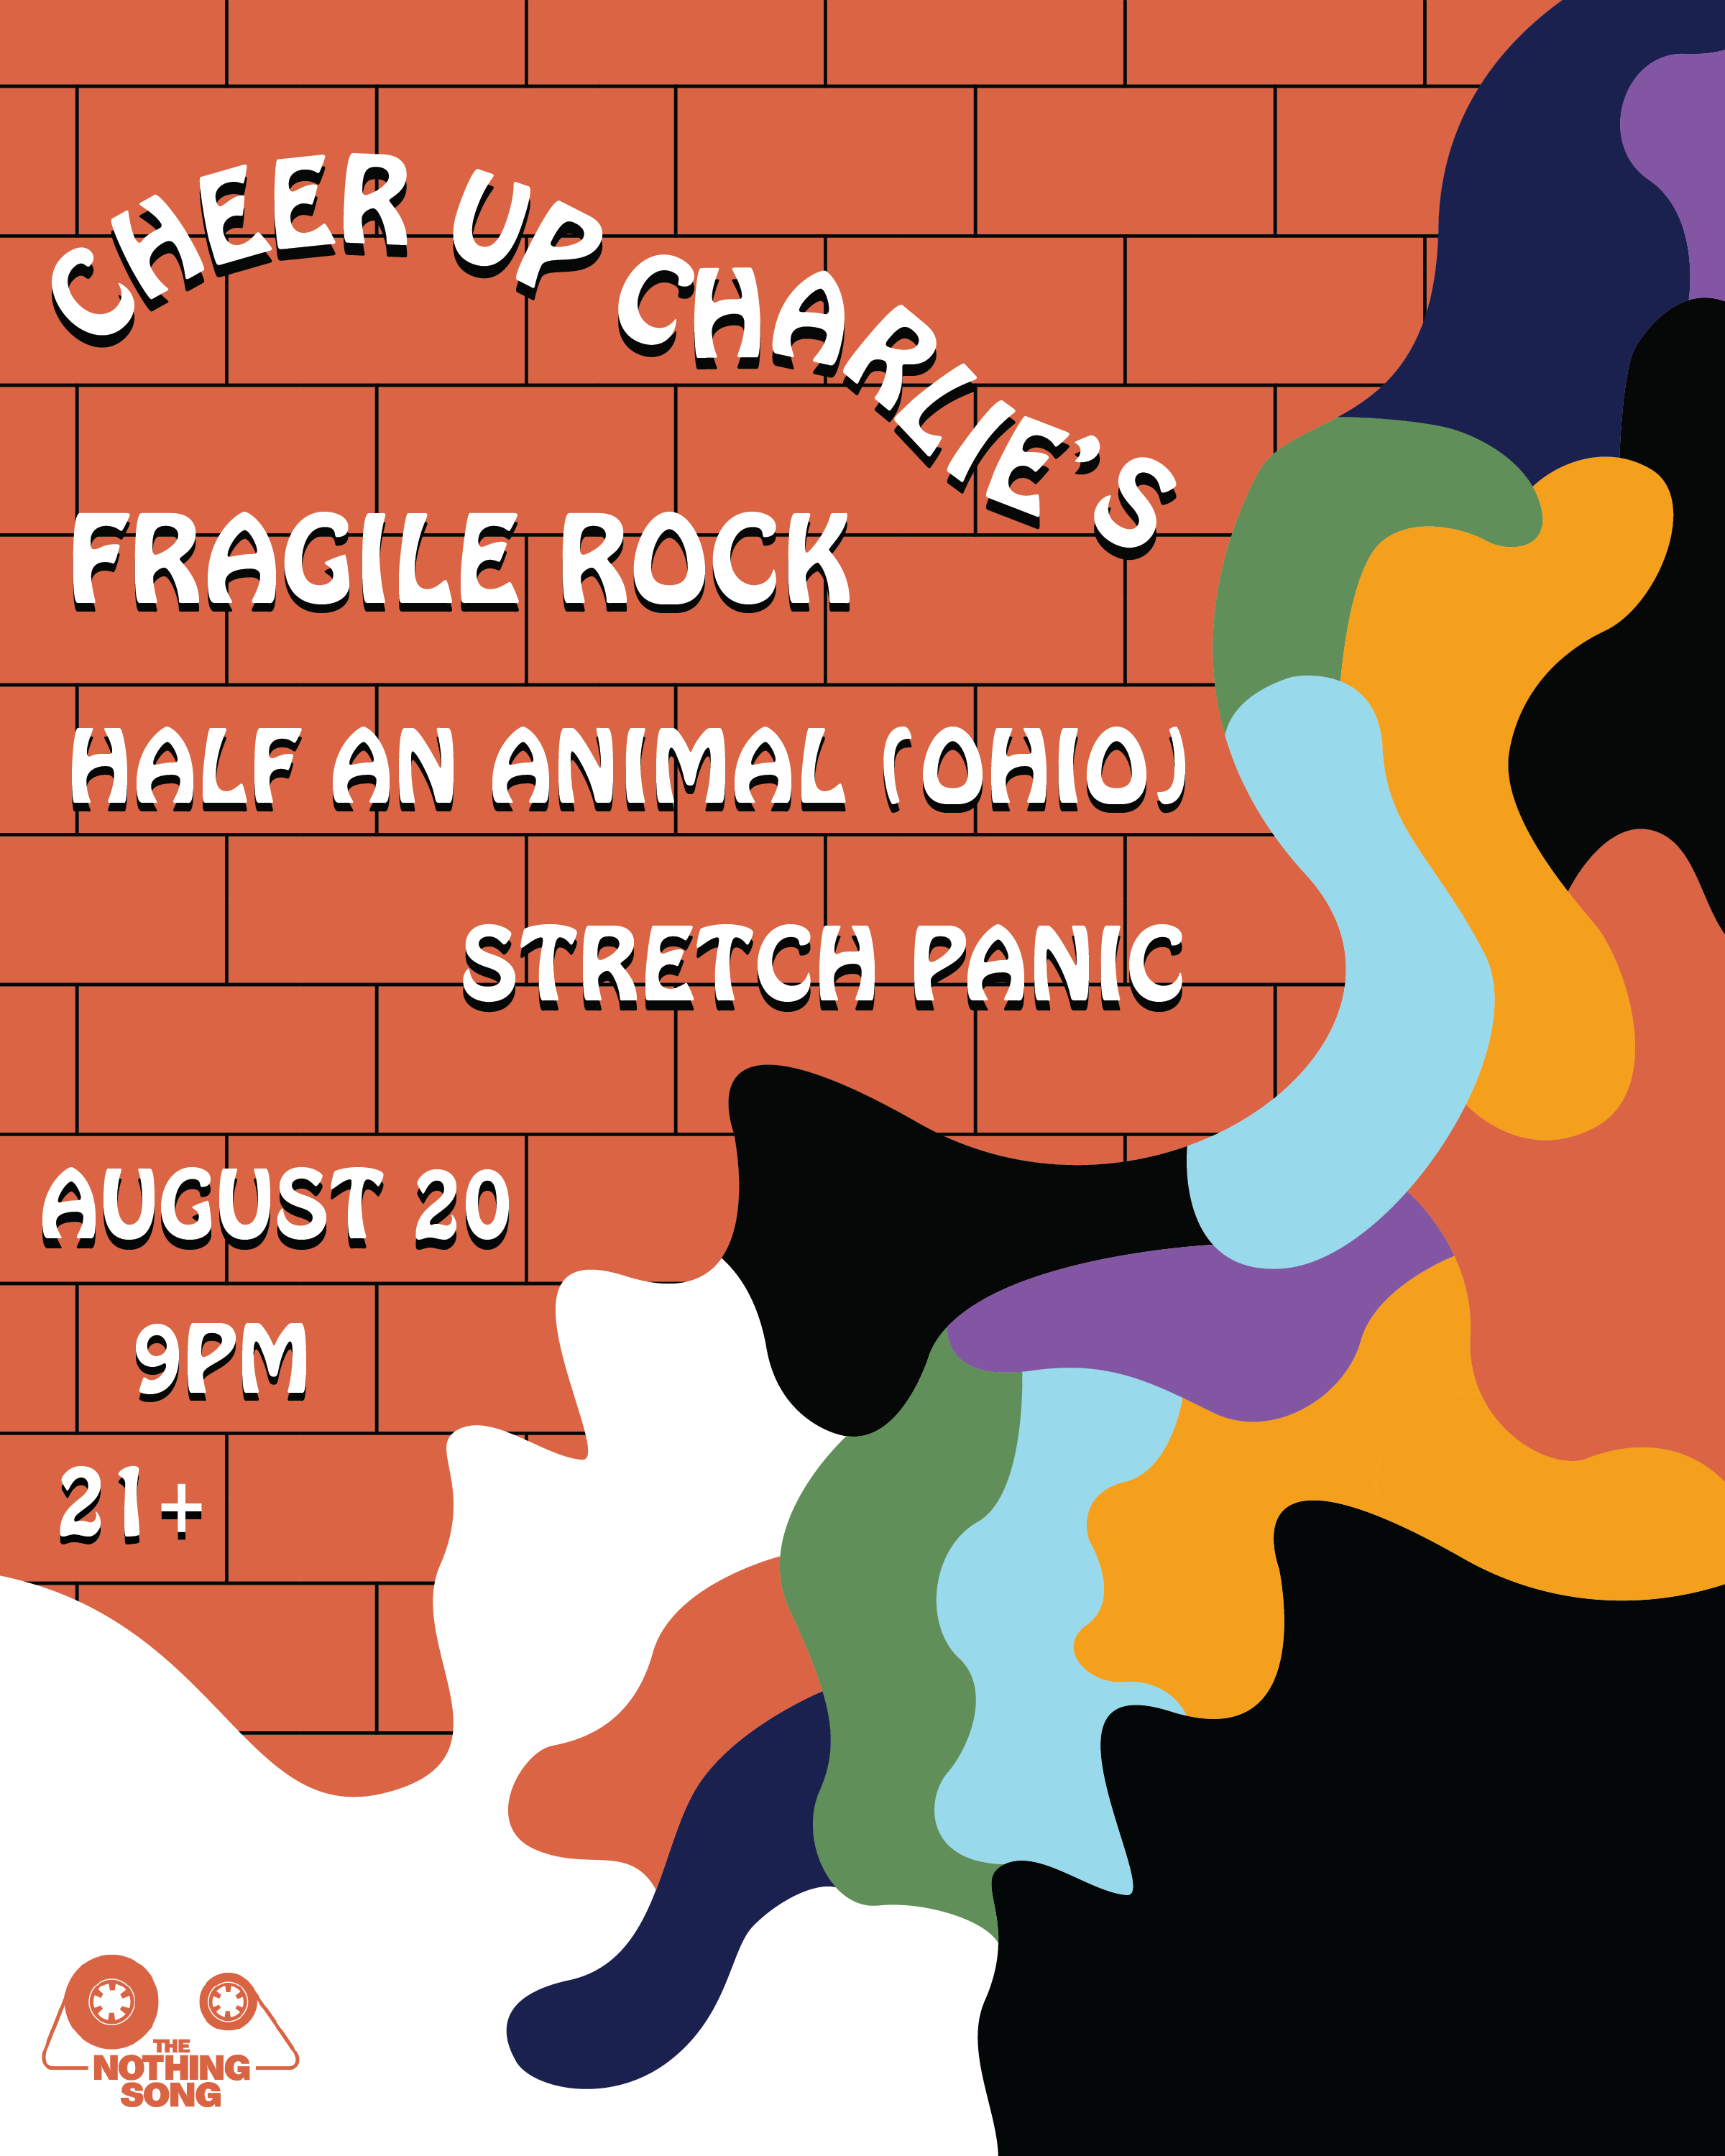 August 20th, Austin, TX - gig poster for Cheer Up Charlie's